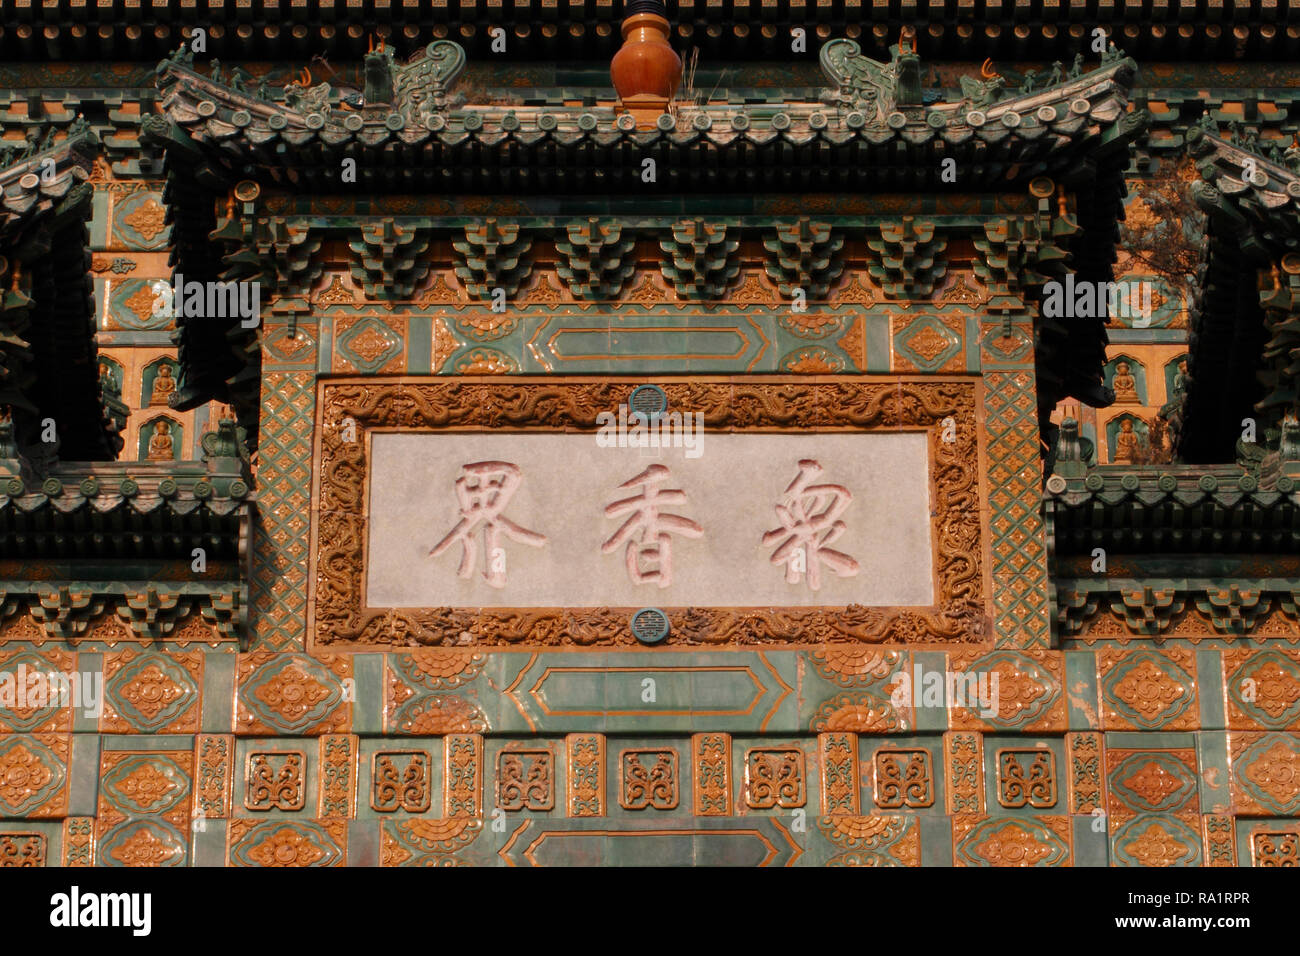 Chinese writing on a plaque, embedded into a glazed tiled building at the Summer Palace, Beijing, China. Hall of the Sea of Wisdom - Stock Image